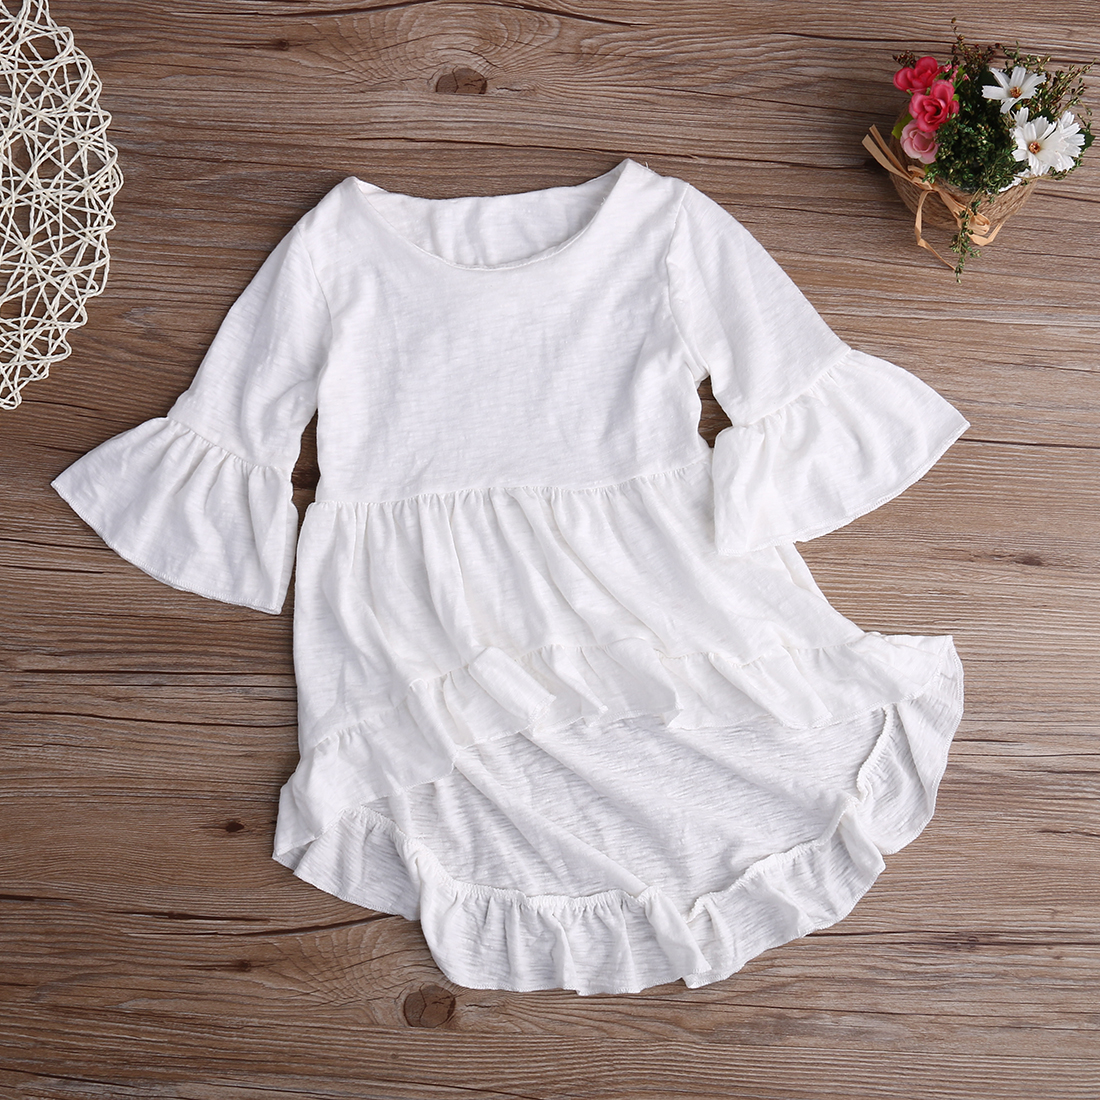 White Baby Girls Dress Frills Flare Sleeve Top T-Shirt Party Ruffles Hem Dresses 1-6Y flamingos print dip hem top